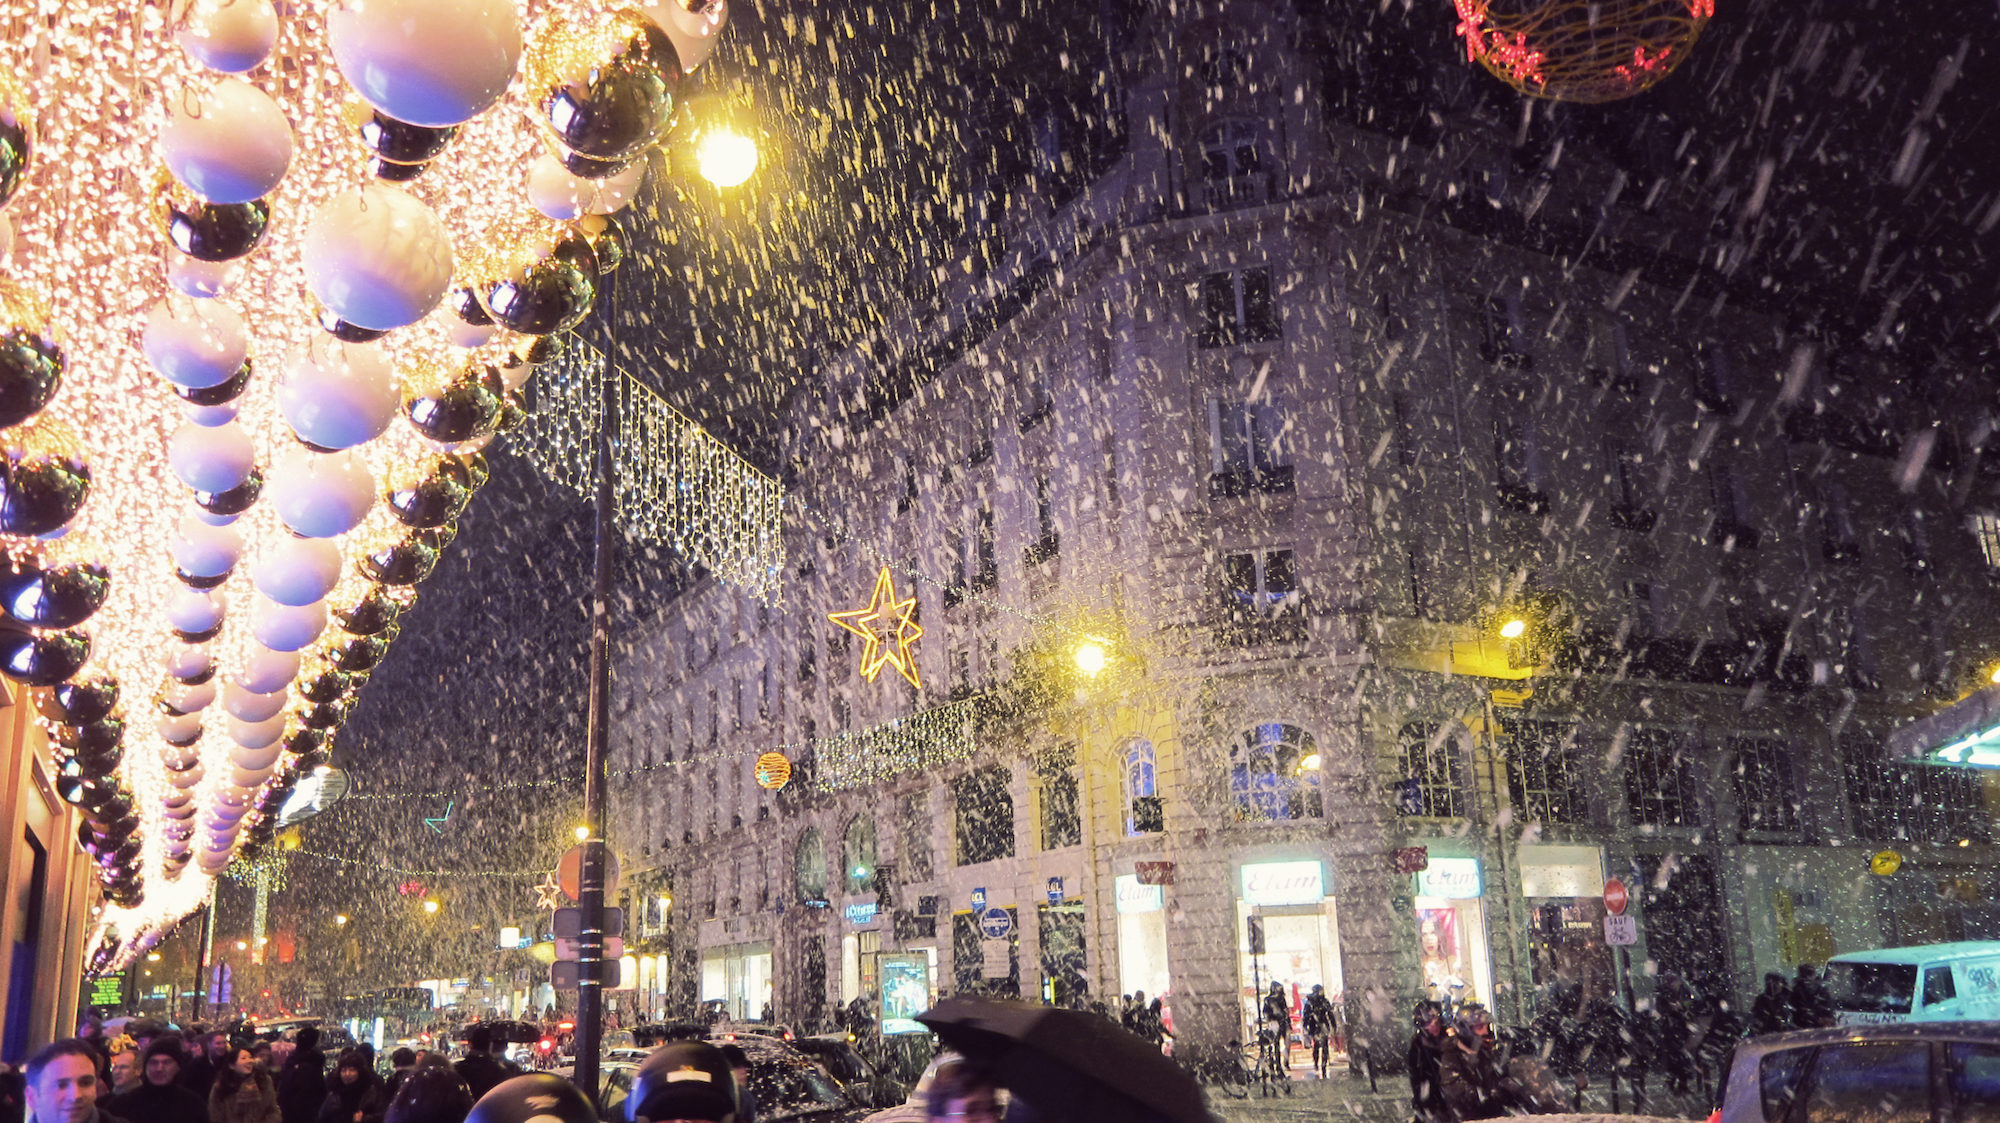 Winter in Paris is all about the Christmas lights and department stores' whimsical window displays.